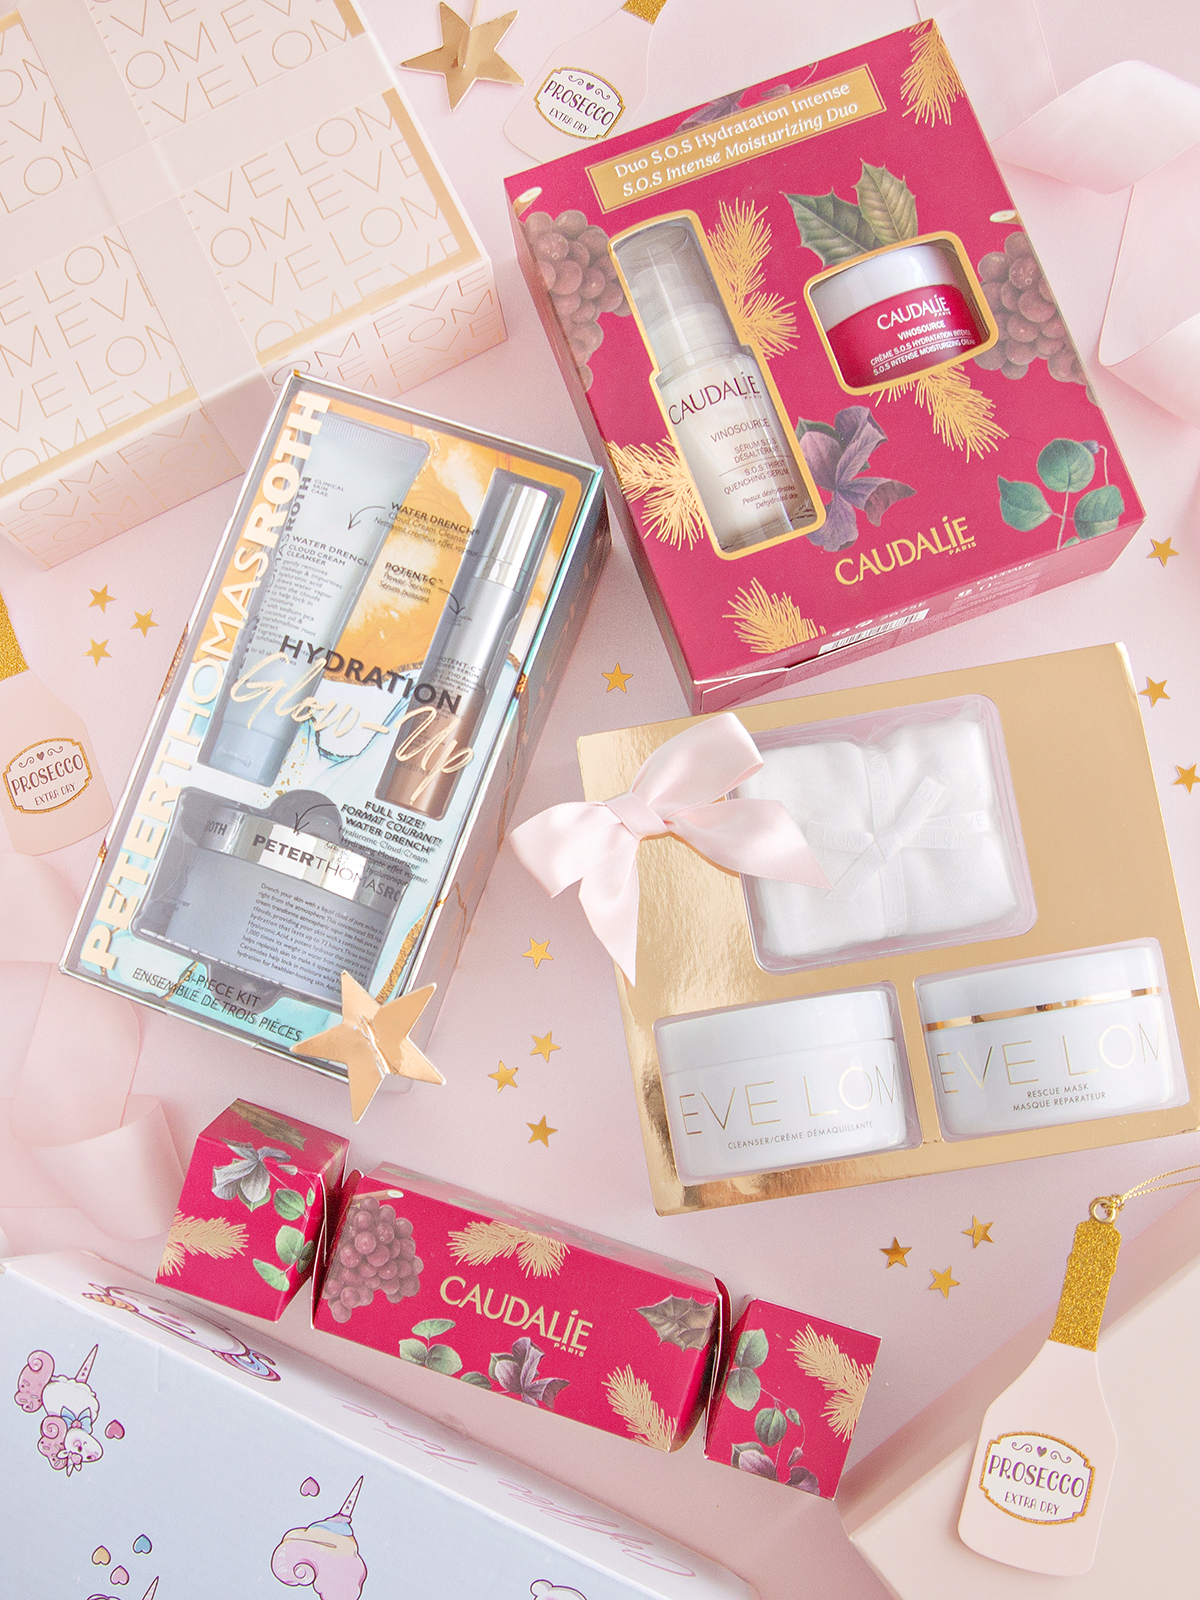 A selection of Christmas skincare products from brands Caudalie, Peter Thomas Roth and Eve Lom